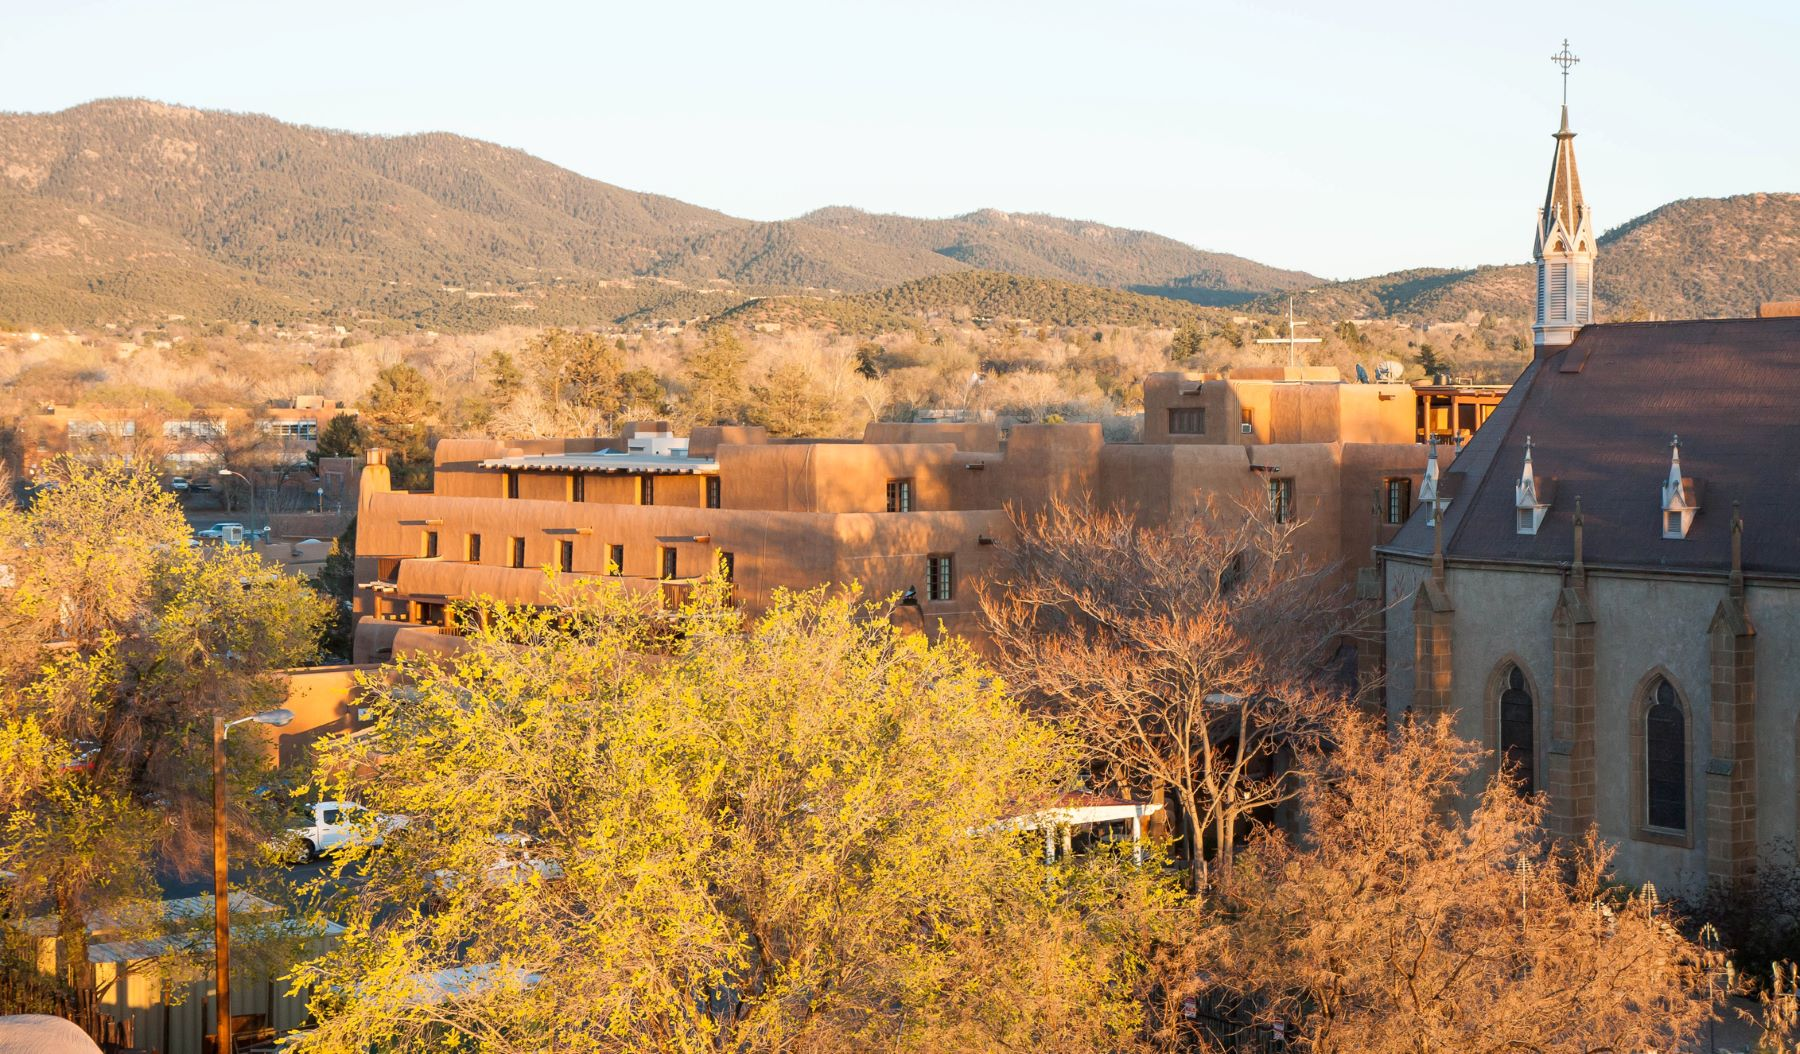 a view of Santa Fe, NM, and the surrounding mountains